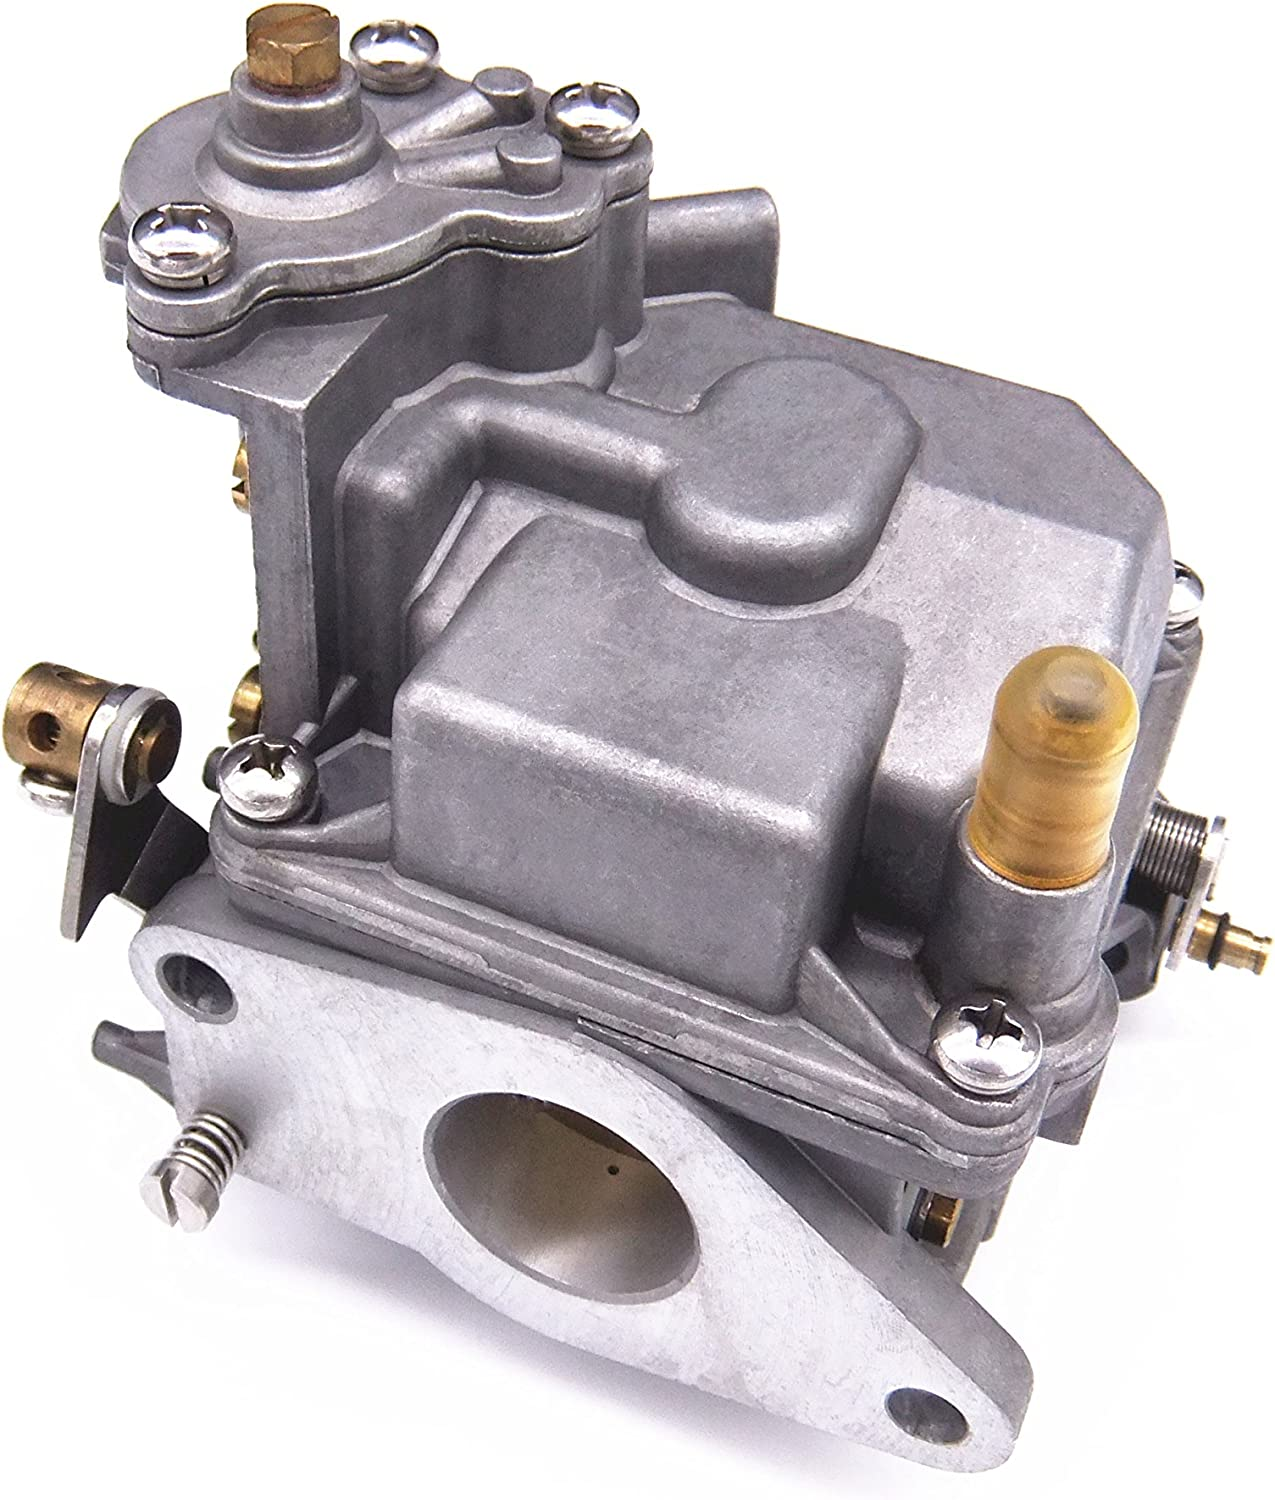 Boat Motor 66M-14301-12-00 Carburetor Assy for Yamaha 4-Stroke 15hp F15 Electric Start Outboard Engine